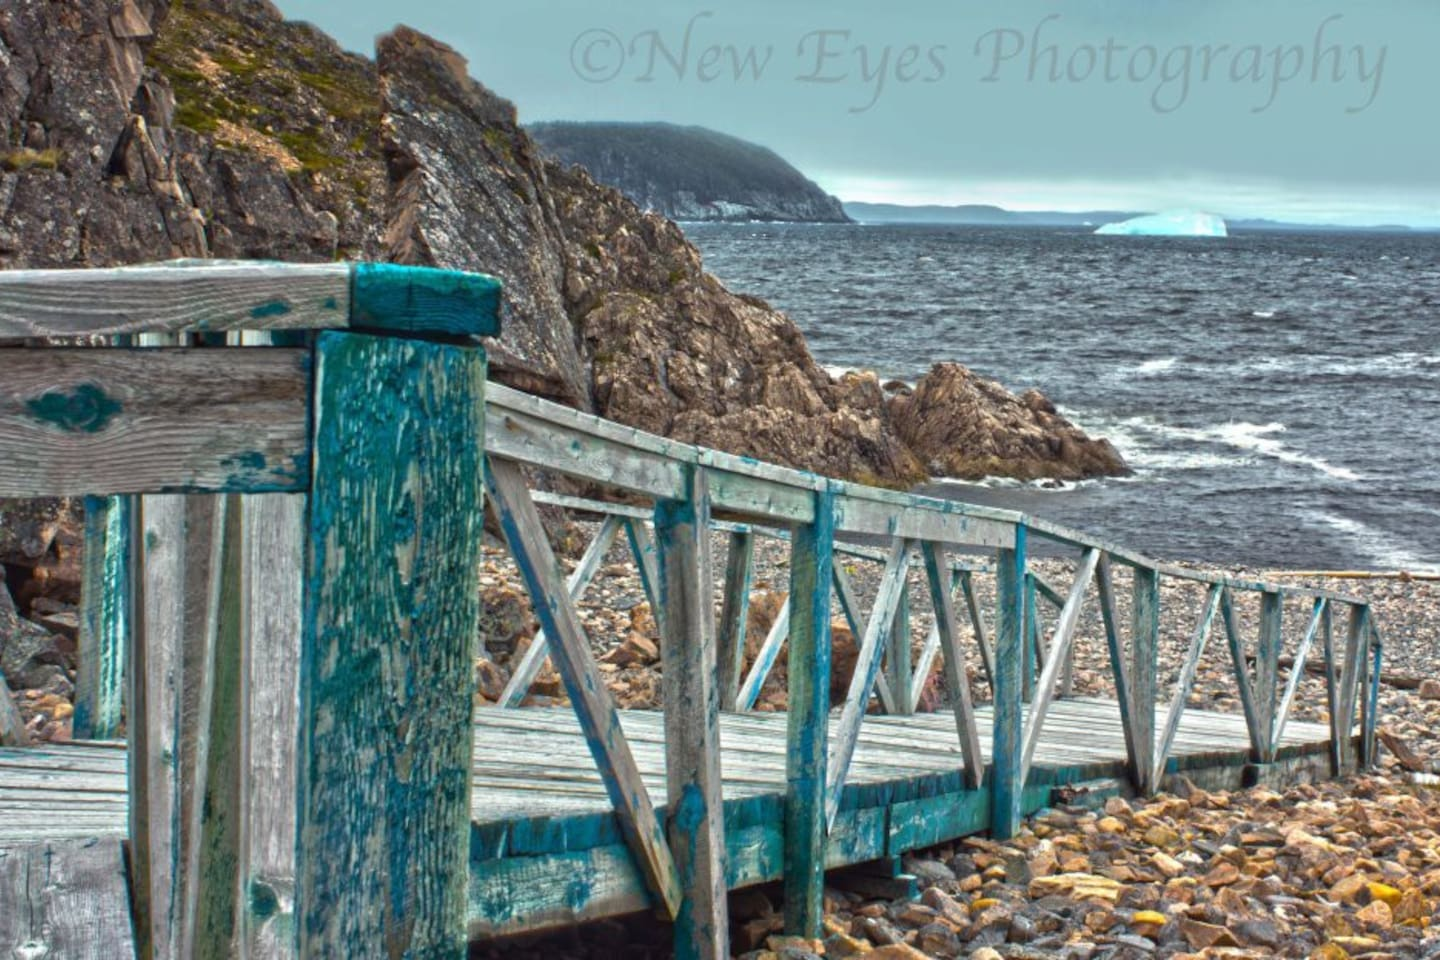 This is the rampway to Island Cove beach, about a 5 minute walk from the door.